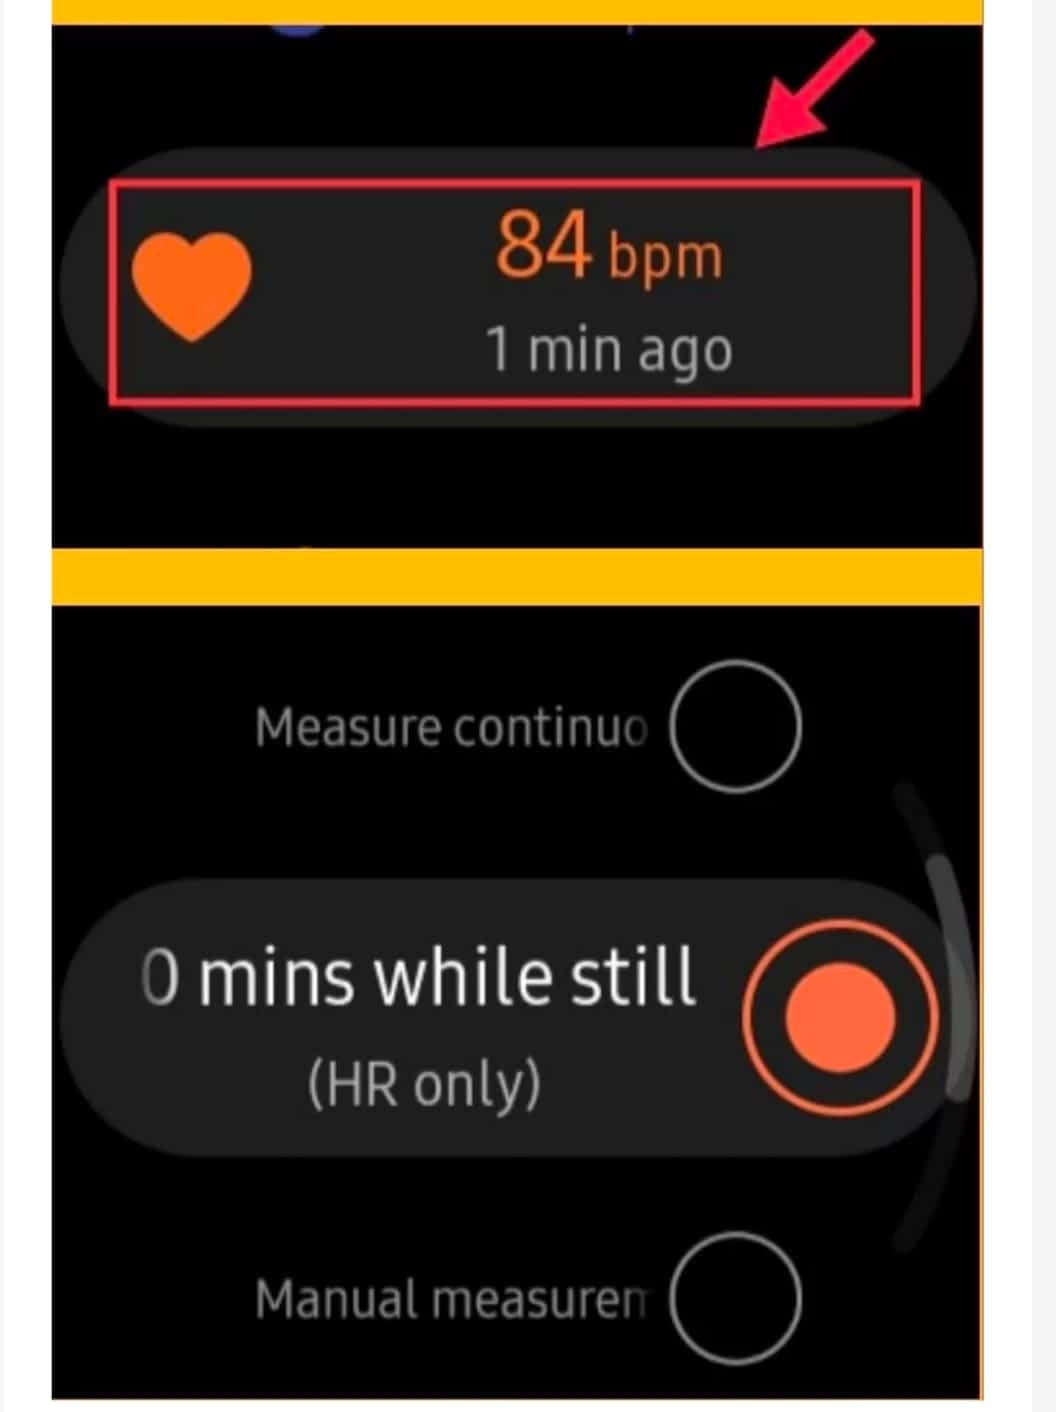 IMG 20210609 233045 measure your heart rate with a Samsung Galaxy Watch,How to Automatically Measure Heart Rate With your Galaxy Watch,How to Manually Check Your Heart Rate with your Galaxy Watch